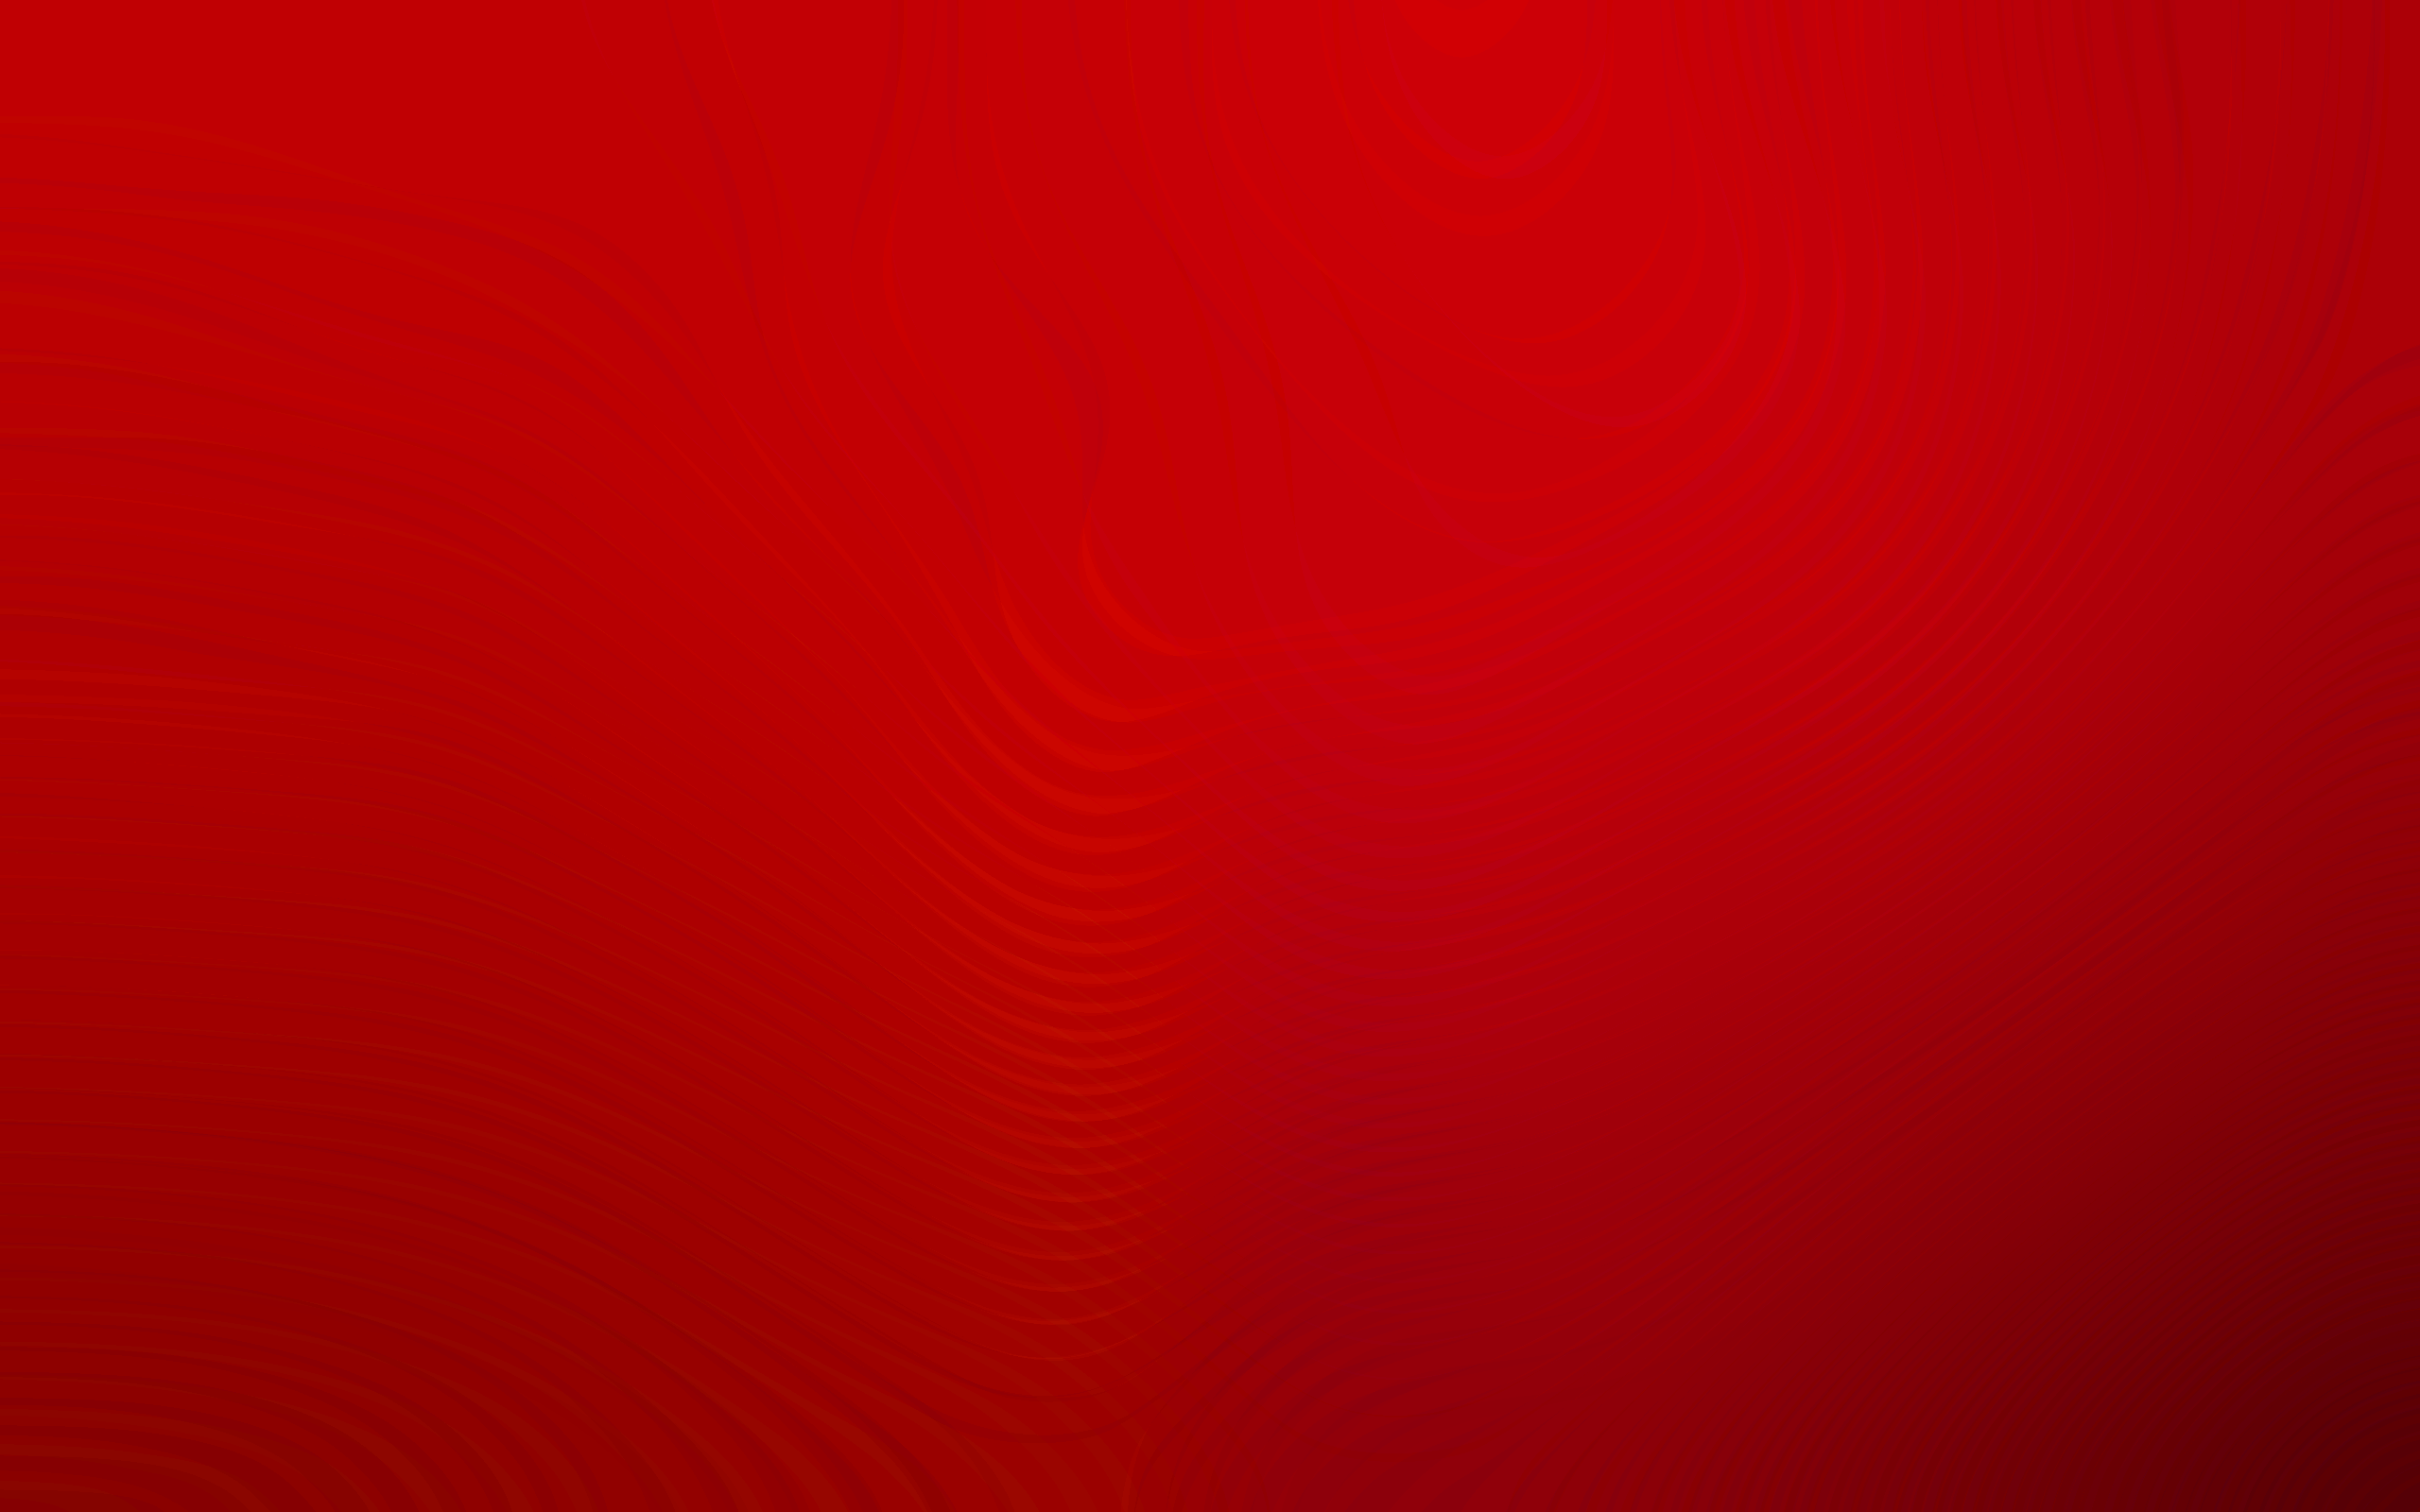 Red backgrounds HD Wallpapers, 0.38 Mb, Georgene Wargo